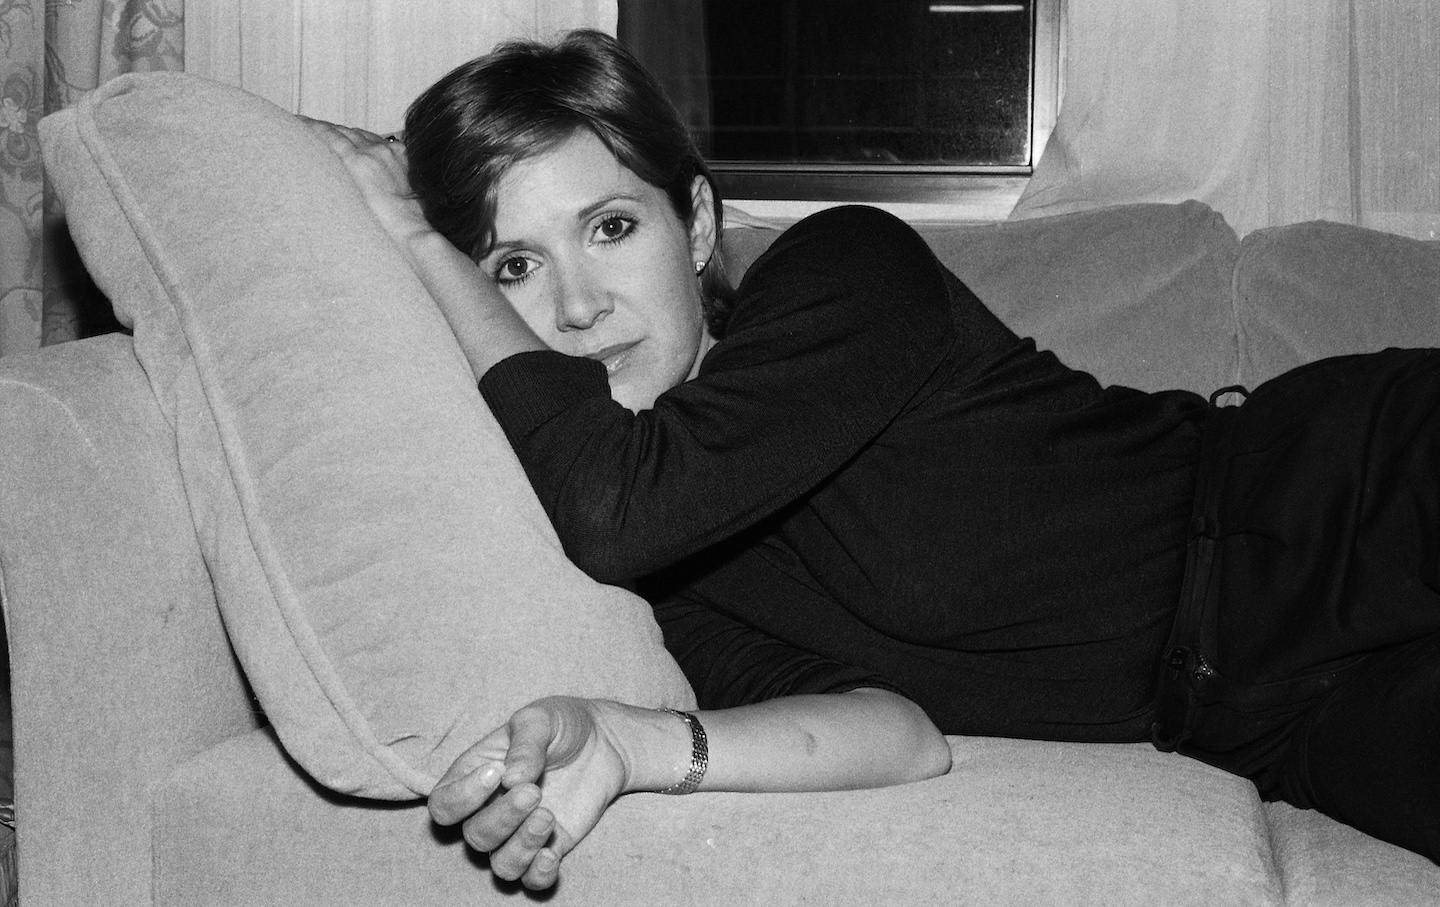 Carrie Fisher's Inimitable Voice